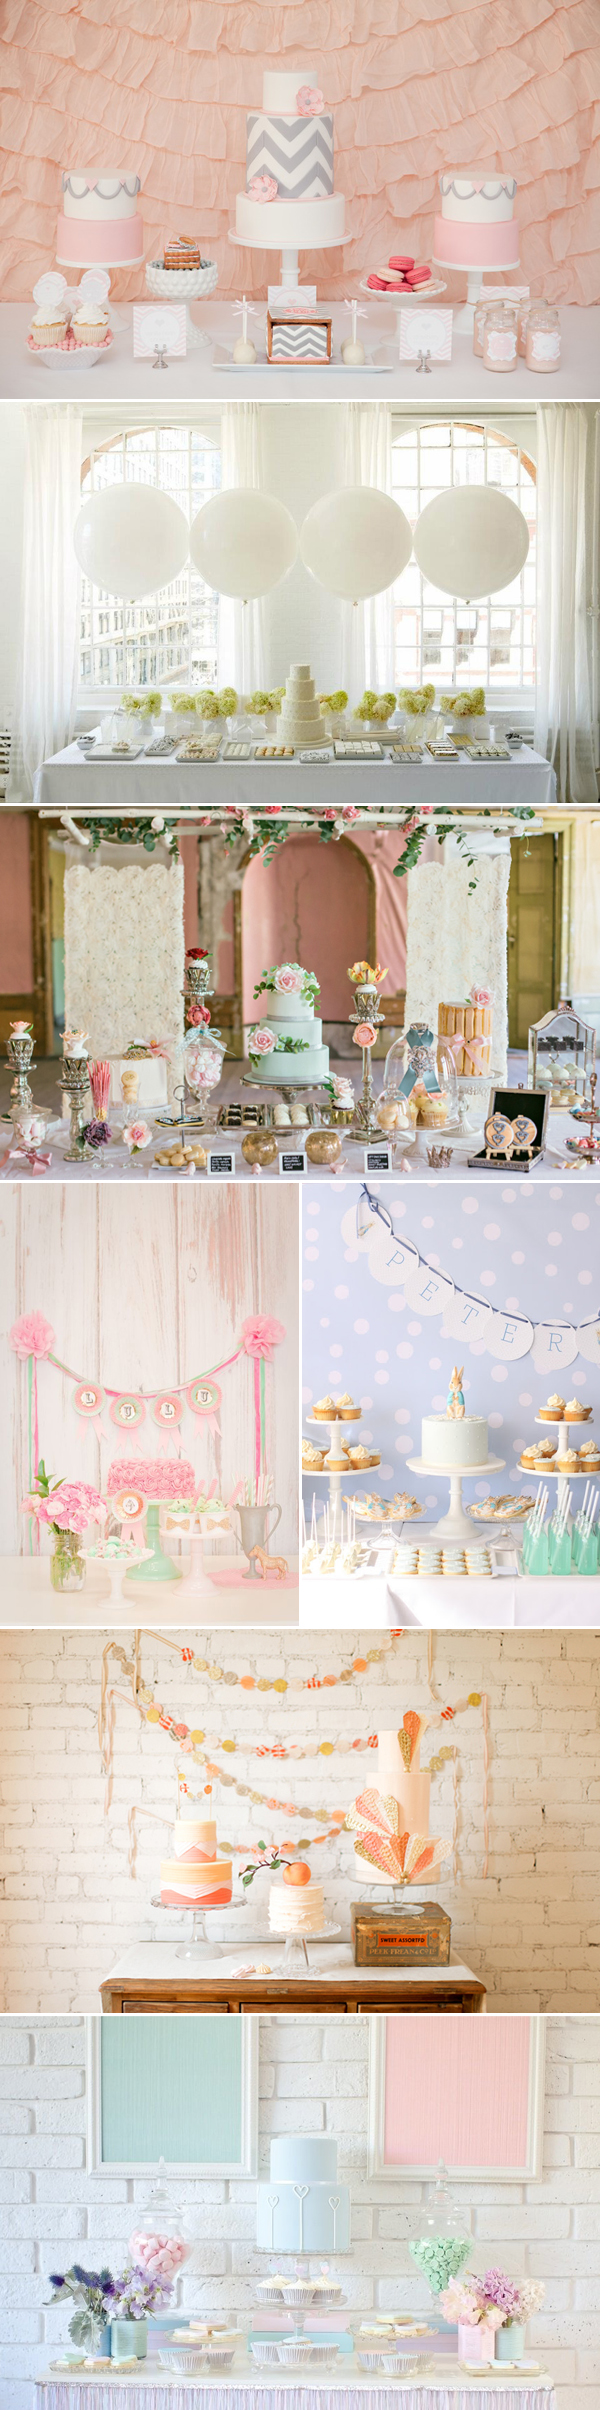 21 Adorable Dessert Table Ideas Praise Wedding